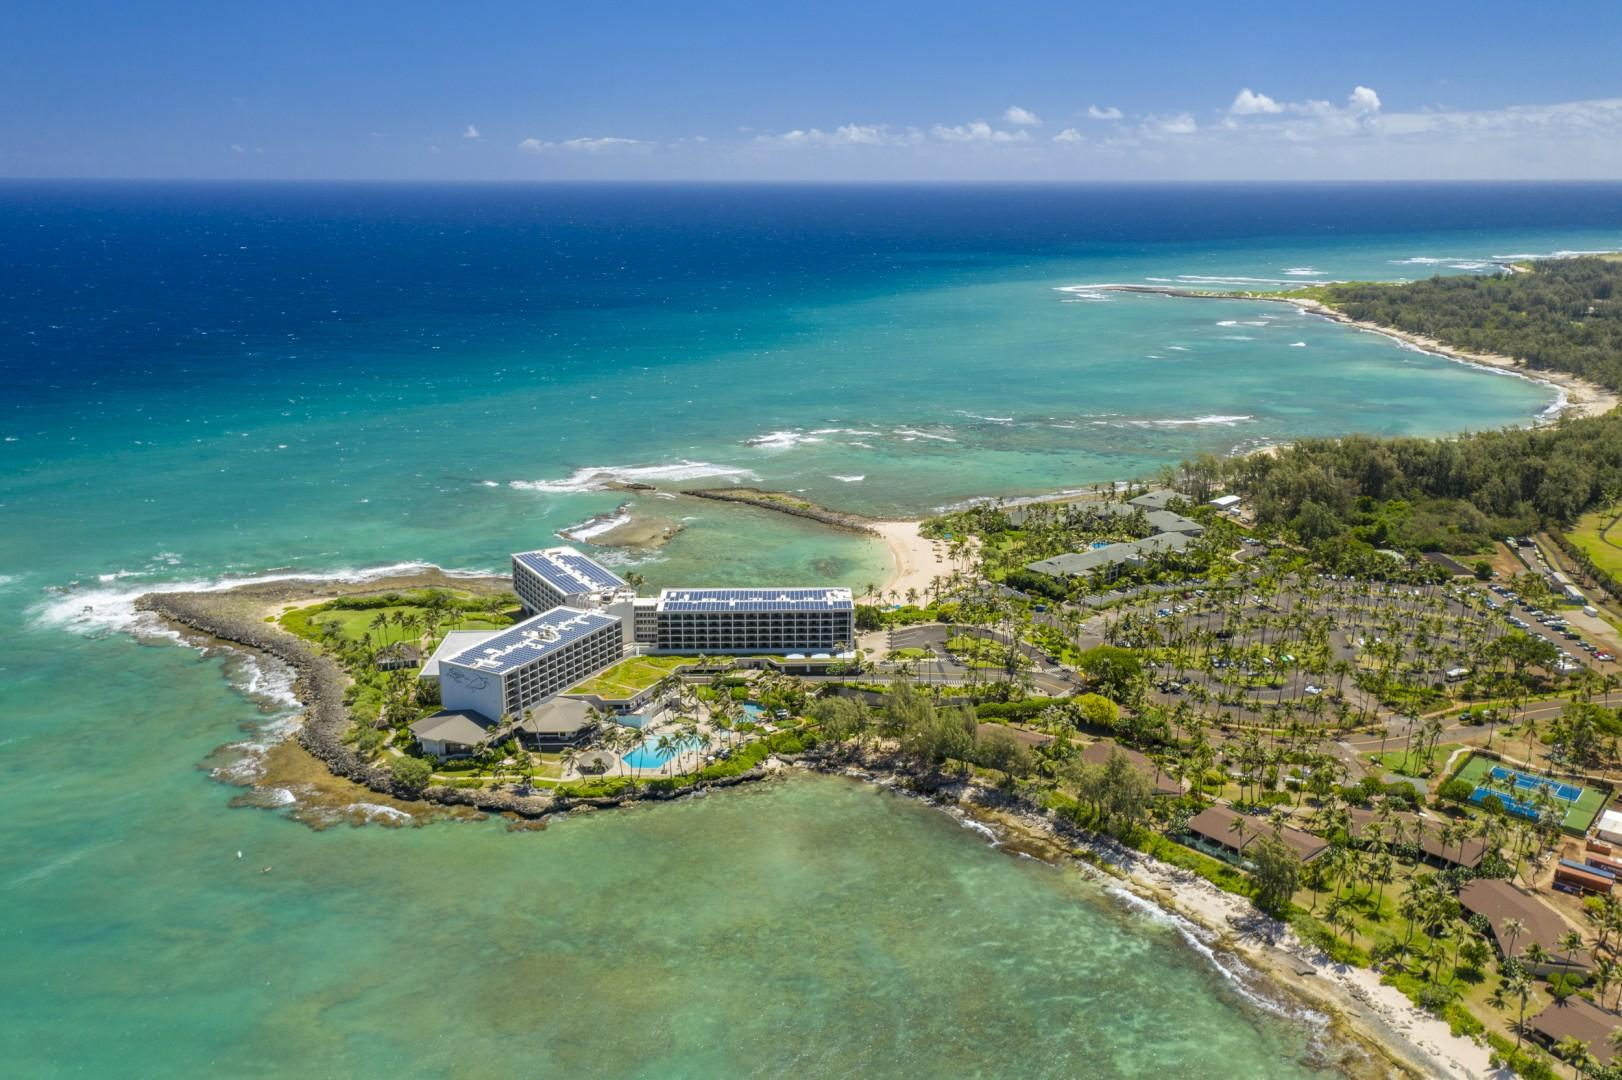 Aerial view of Turtle Bay Resort